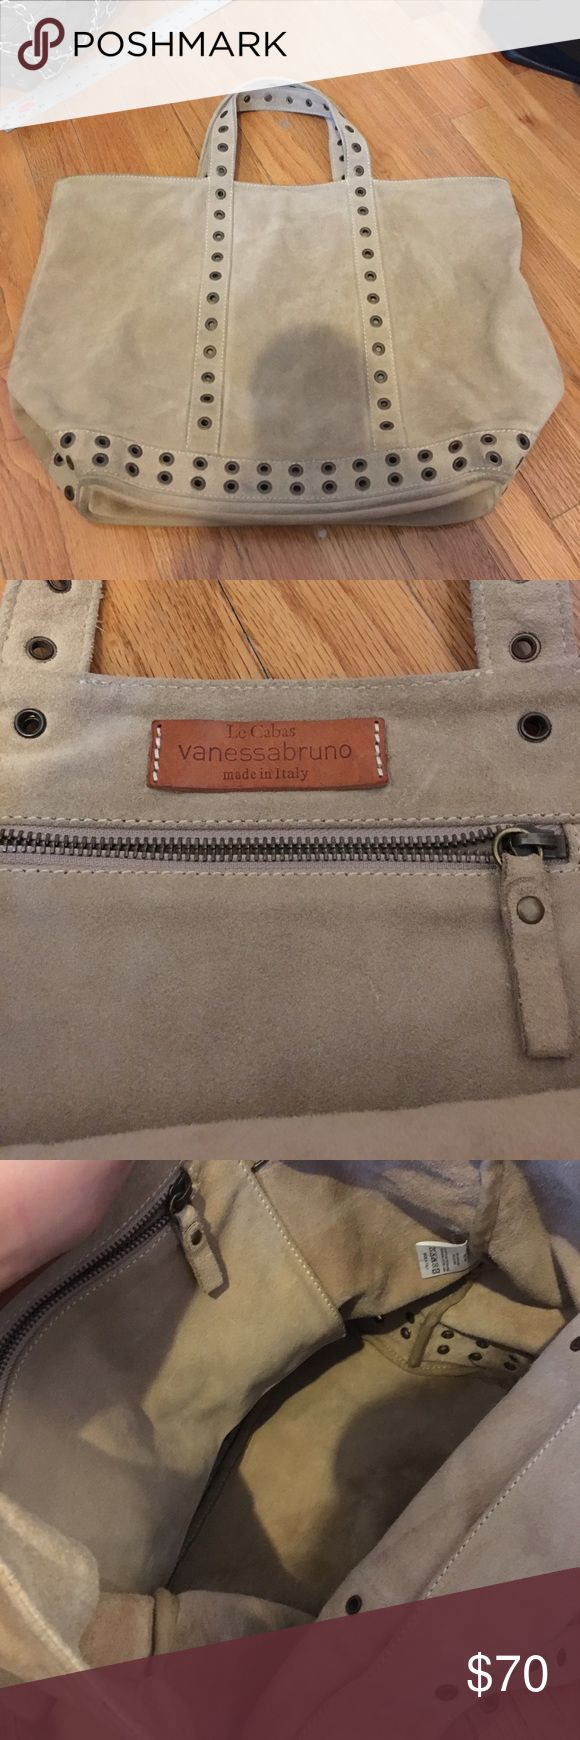 Vanessa bruno le cabas, 100% real suede Worn but lightly used Vanessa Bruno Bags Totes